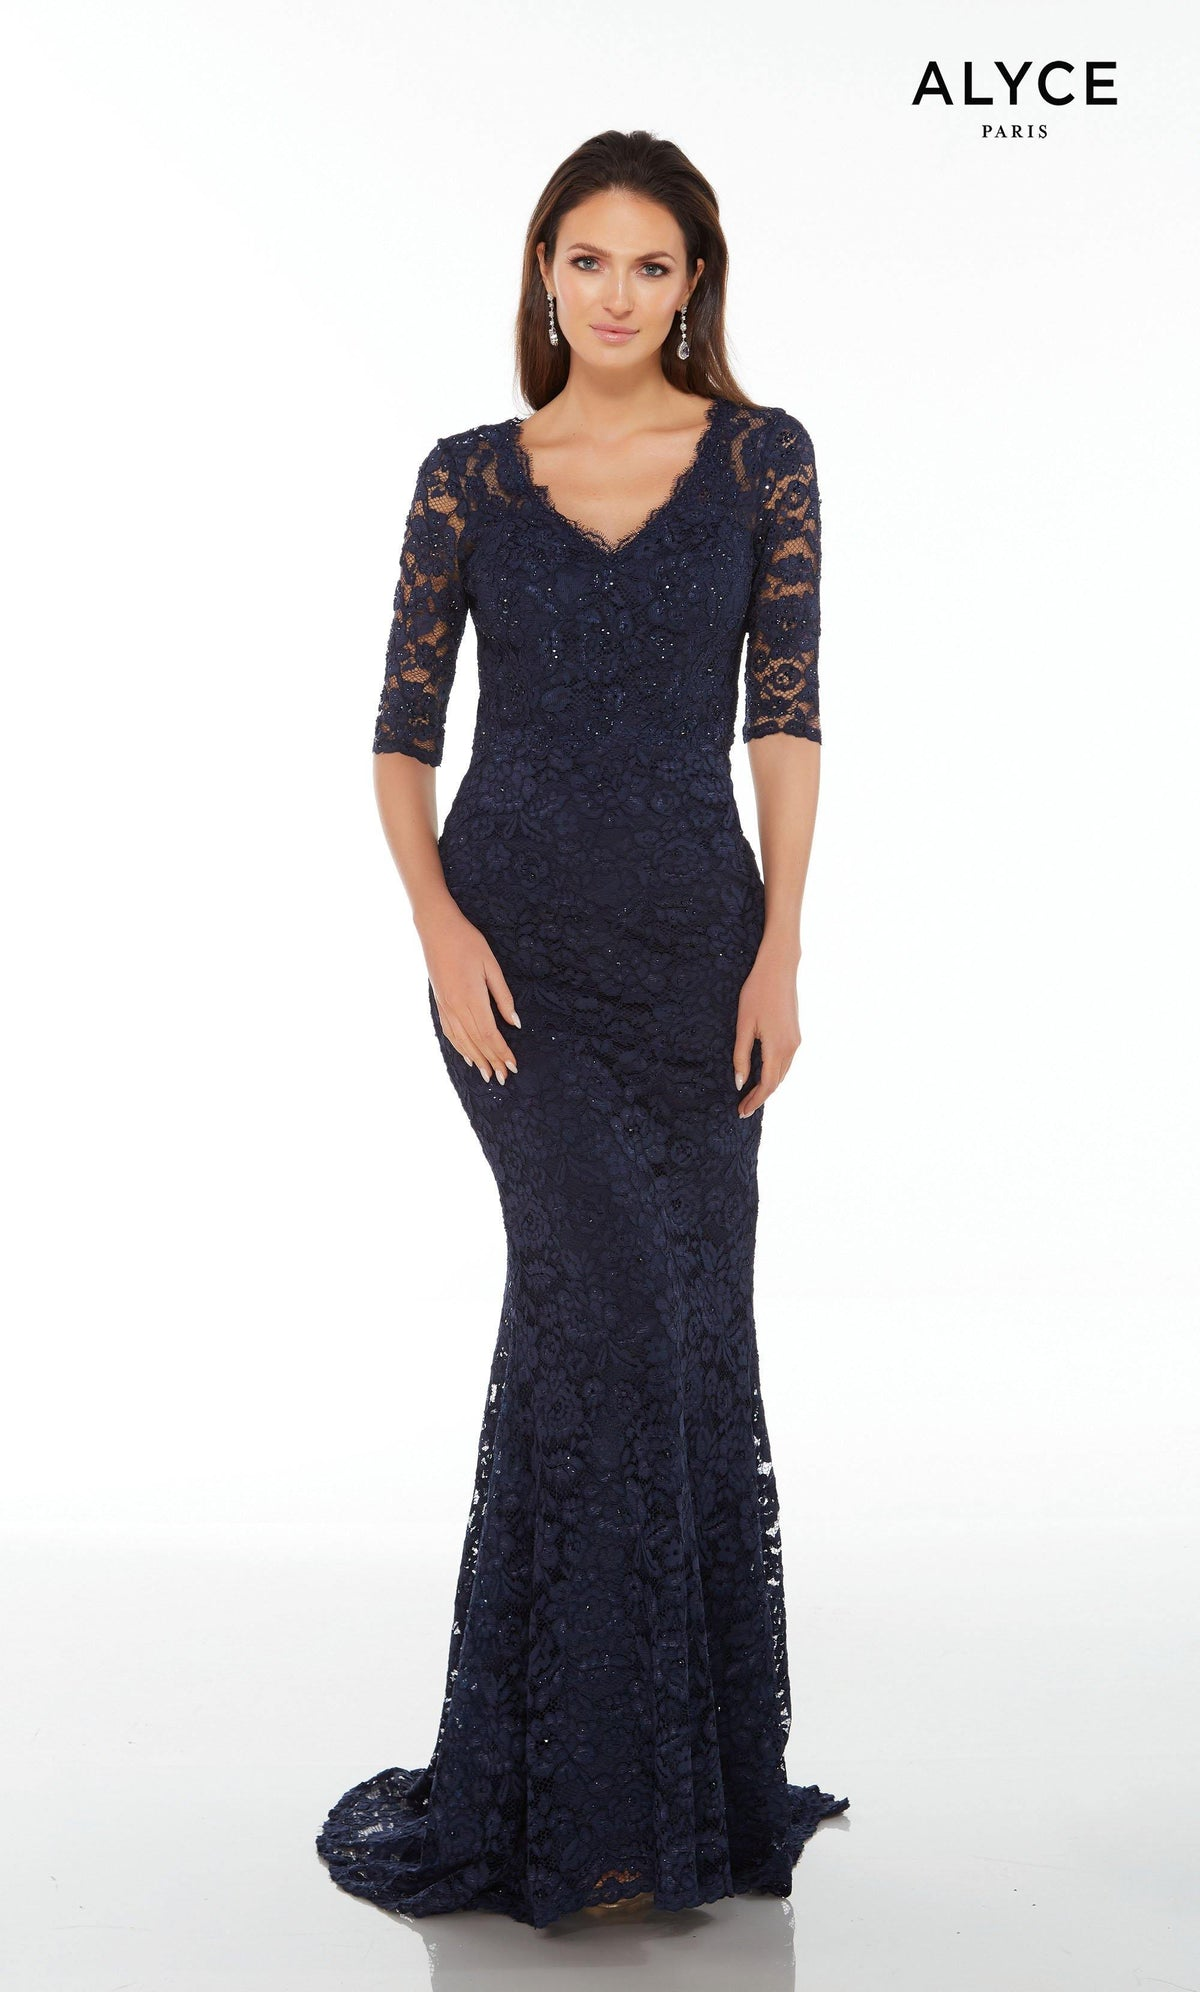 Long Midnight Blue lace guest of wedding dress with sleeves and a V-neckline